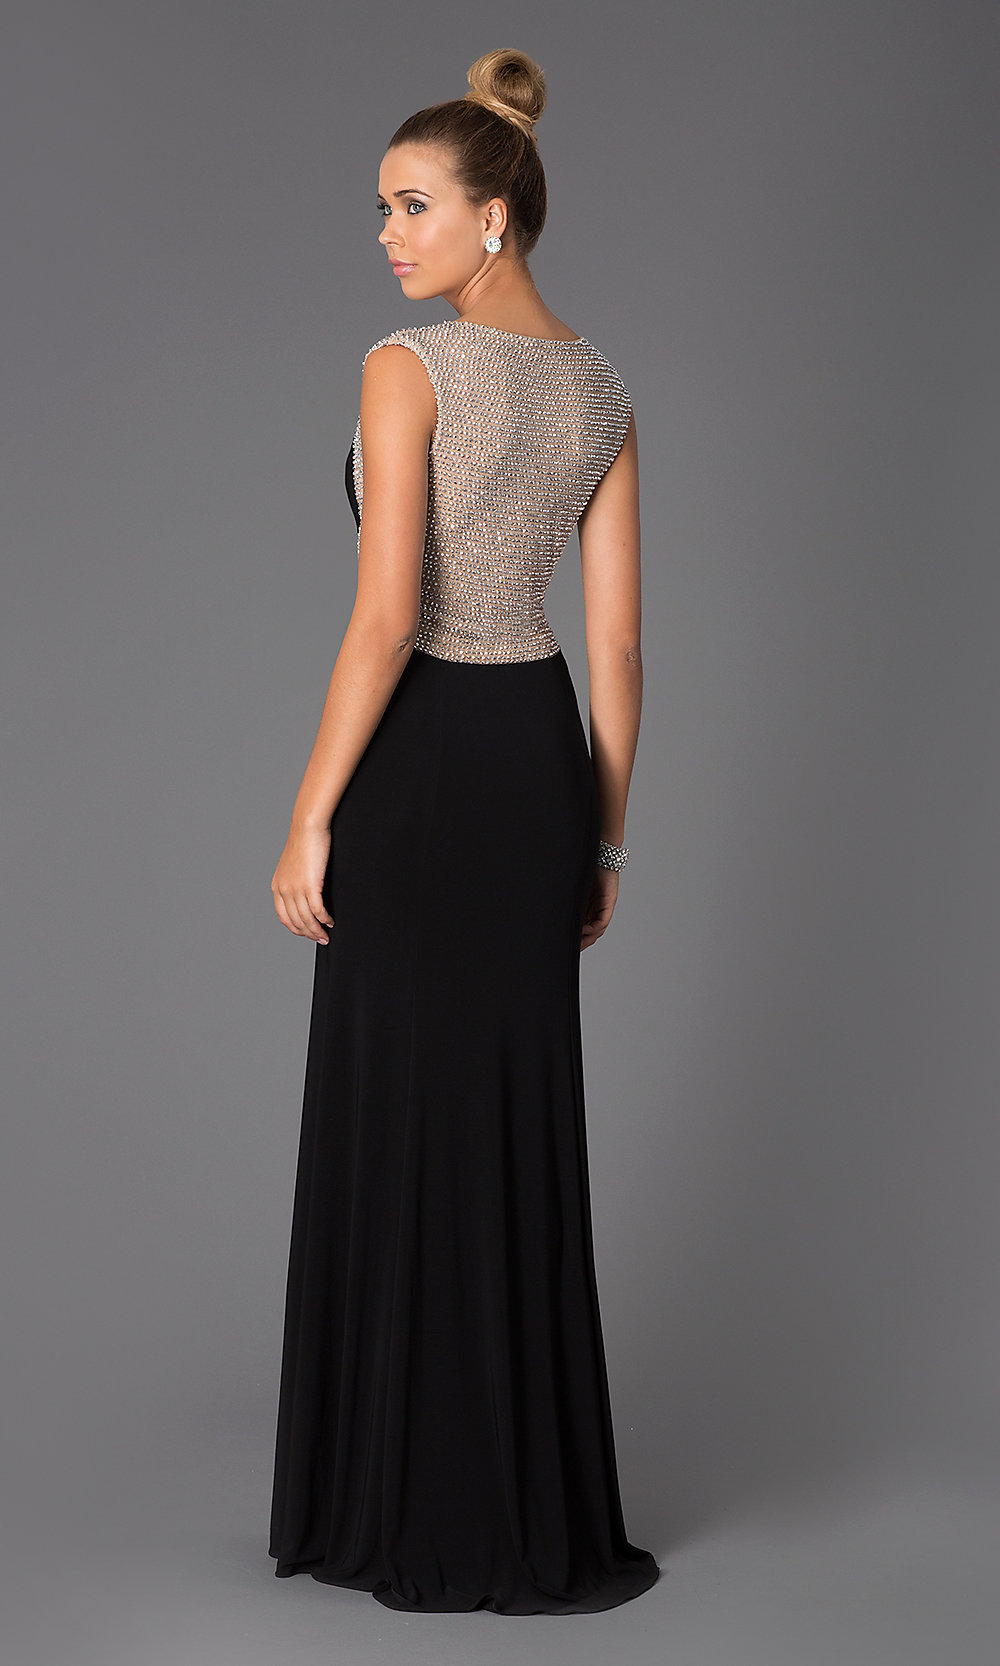 Where To Find Formal Dresses